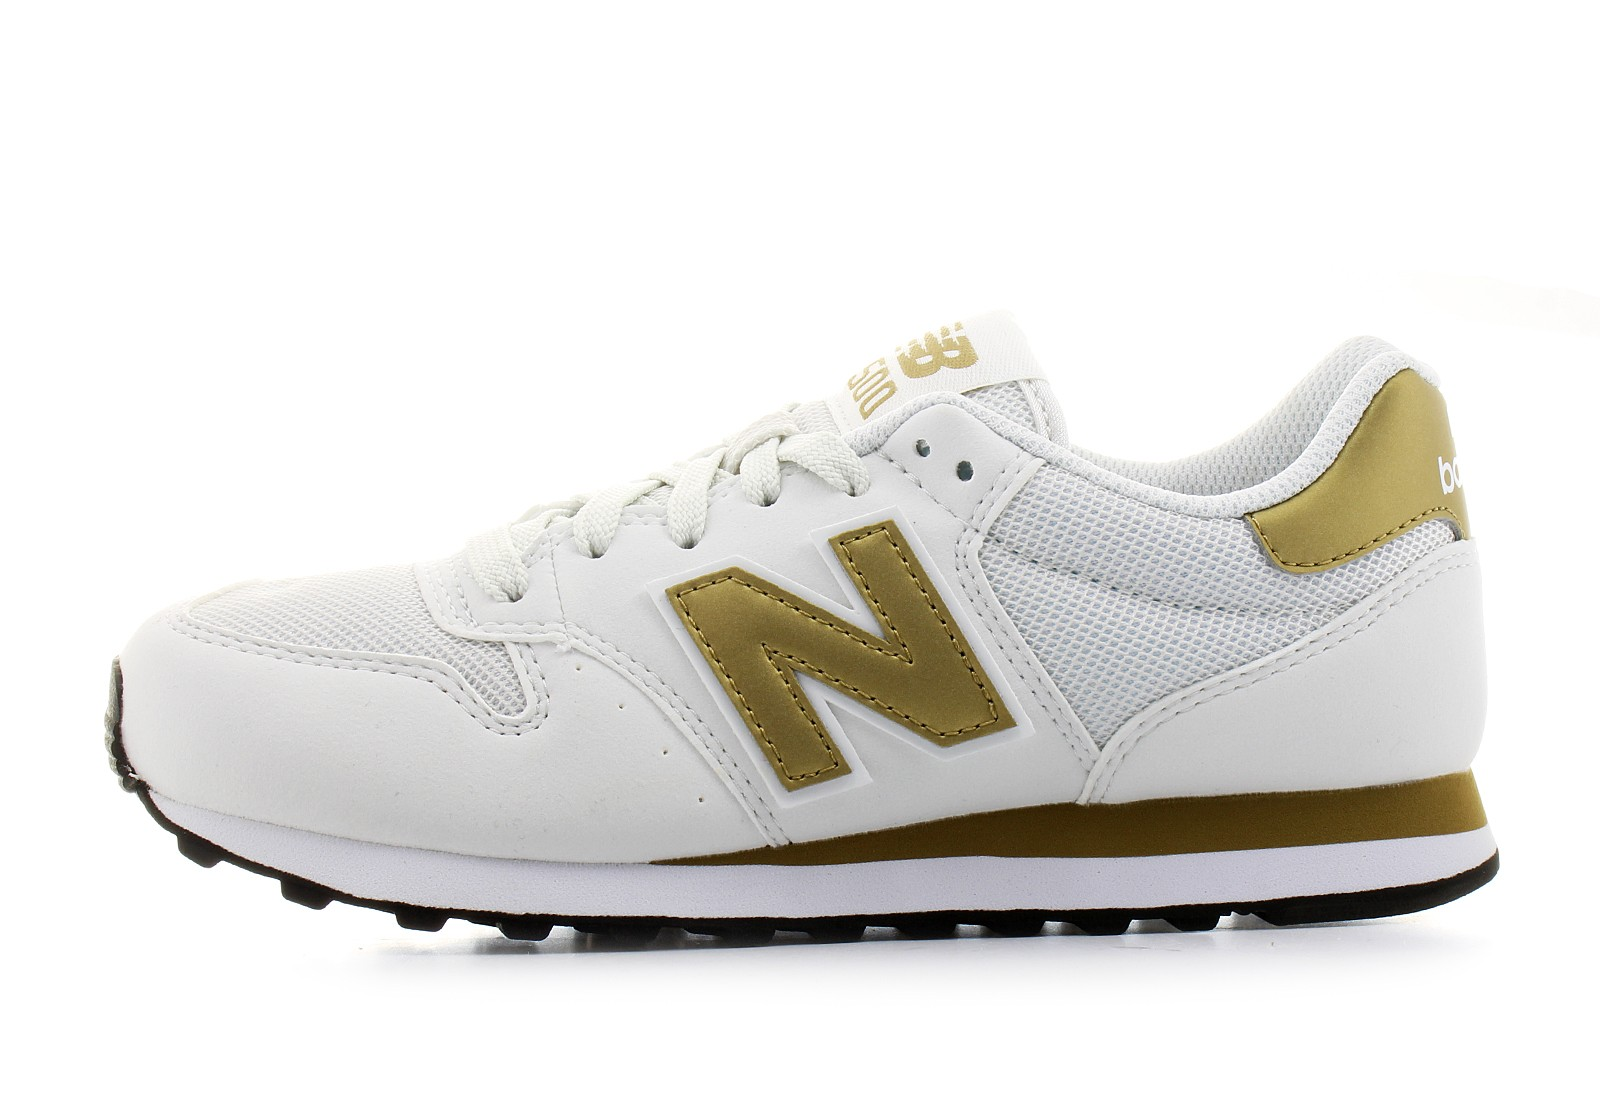 Tackle your workouts with confidence in performance running shoes and stylish clothes from New Balance. Our athletic footwear goes the distance with you. New Balance. Cart Empty Menu. Search. Men Men Shoes NEW RETRO INSPIRED COLOURWAYS. The Range. Shop Collection Shop .